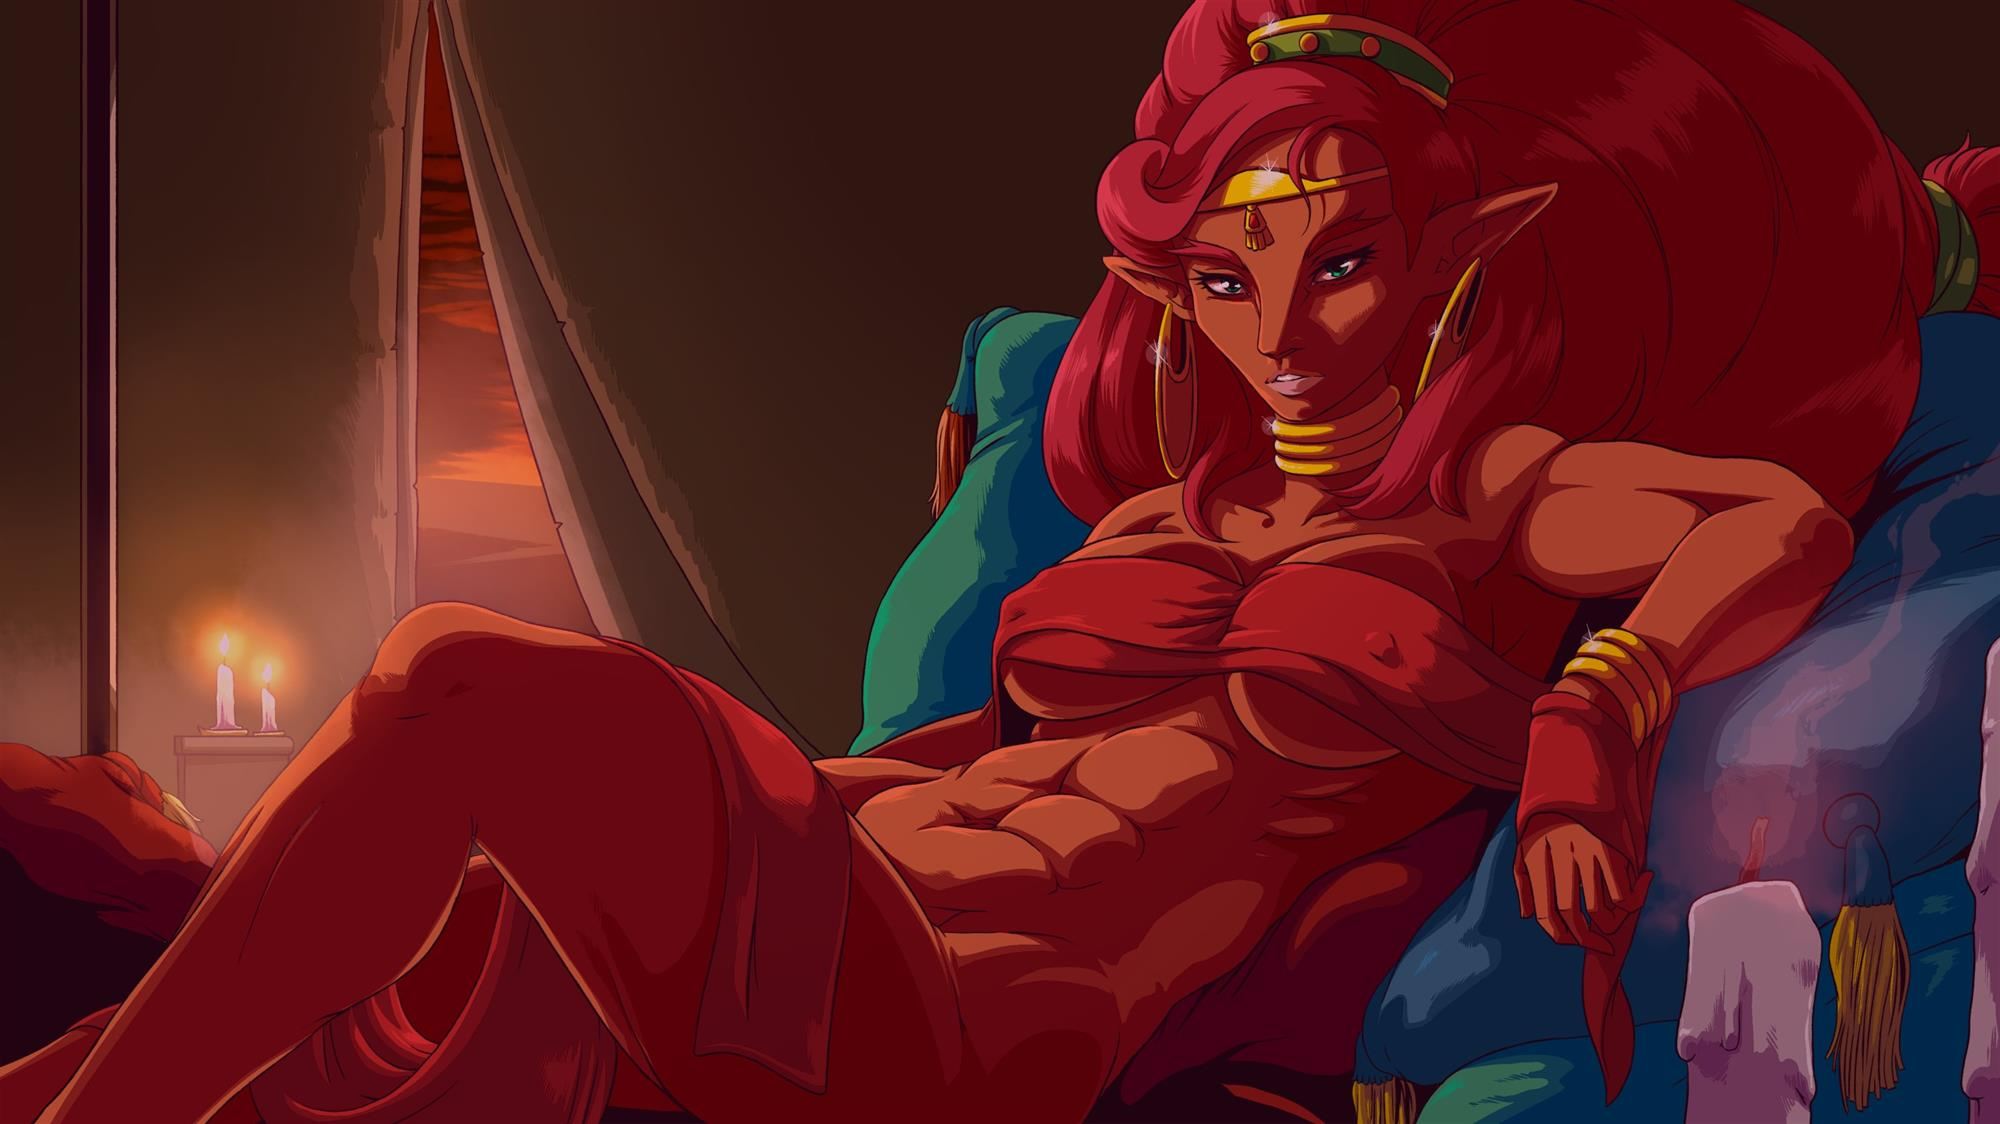 Urbosa resting on a bed looking beautiful